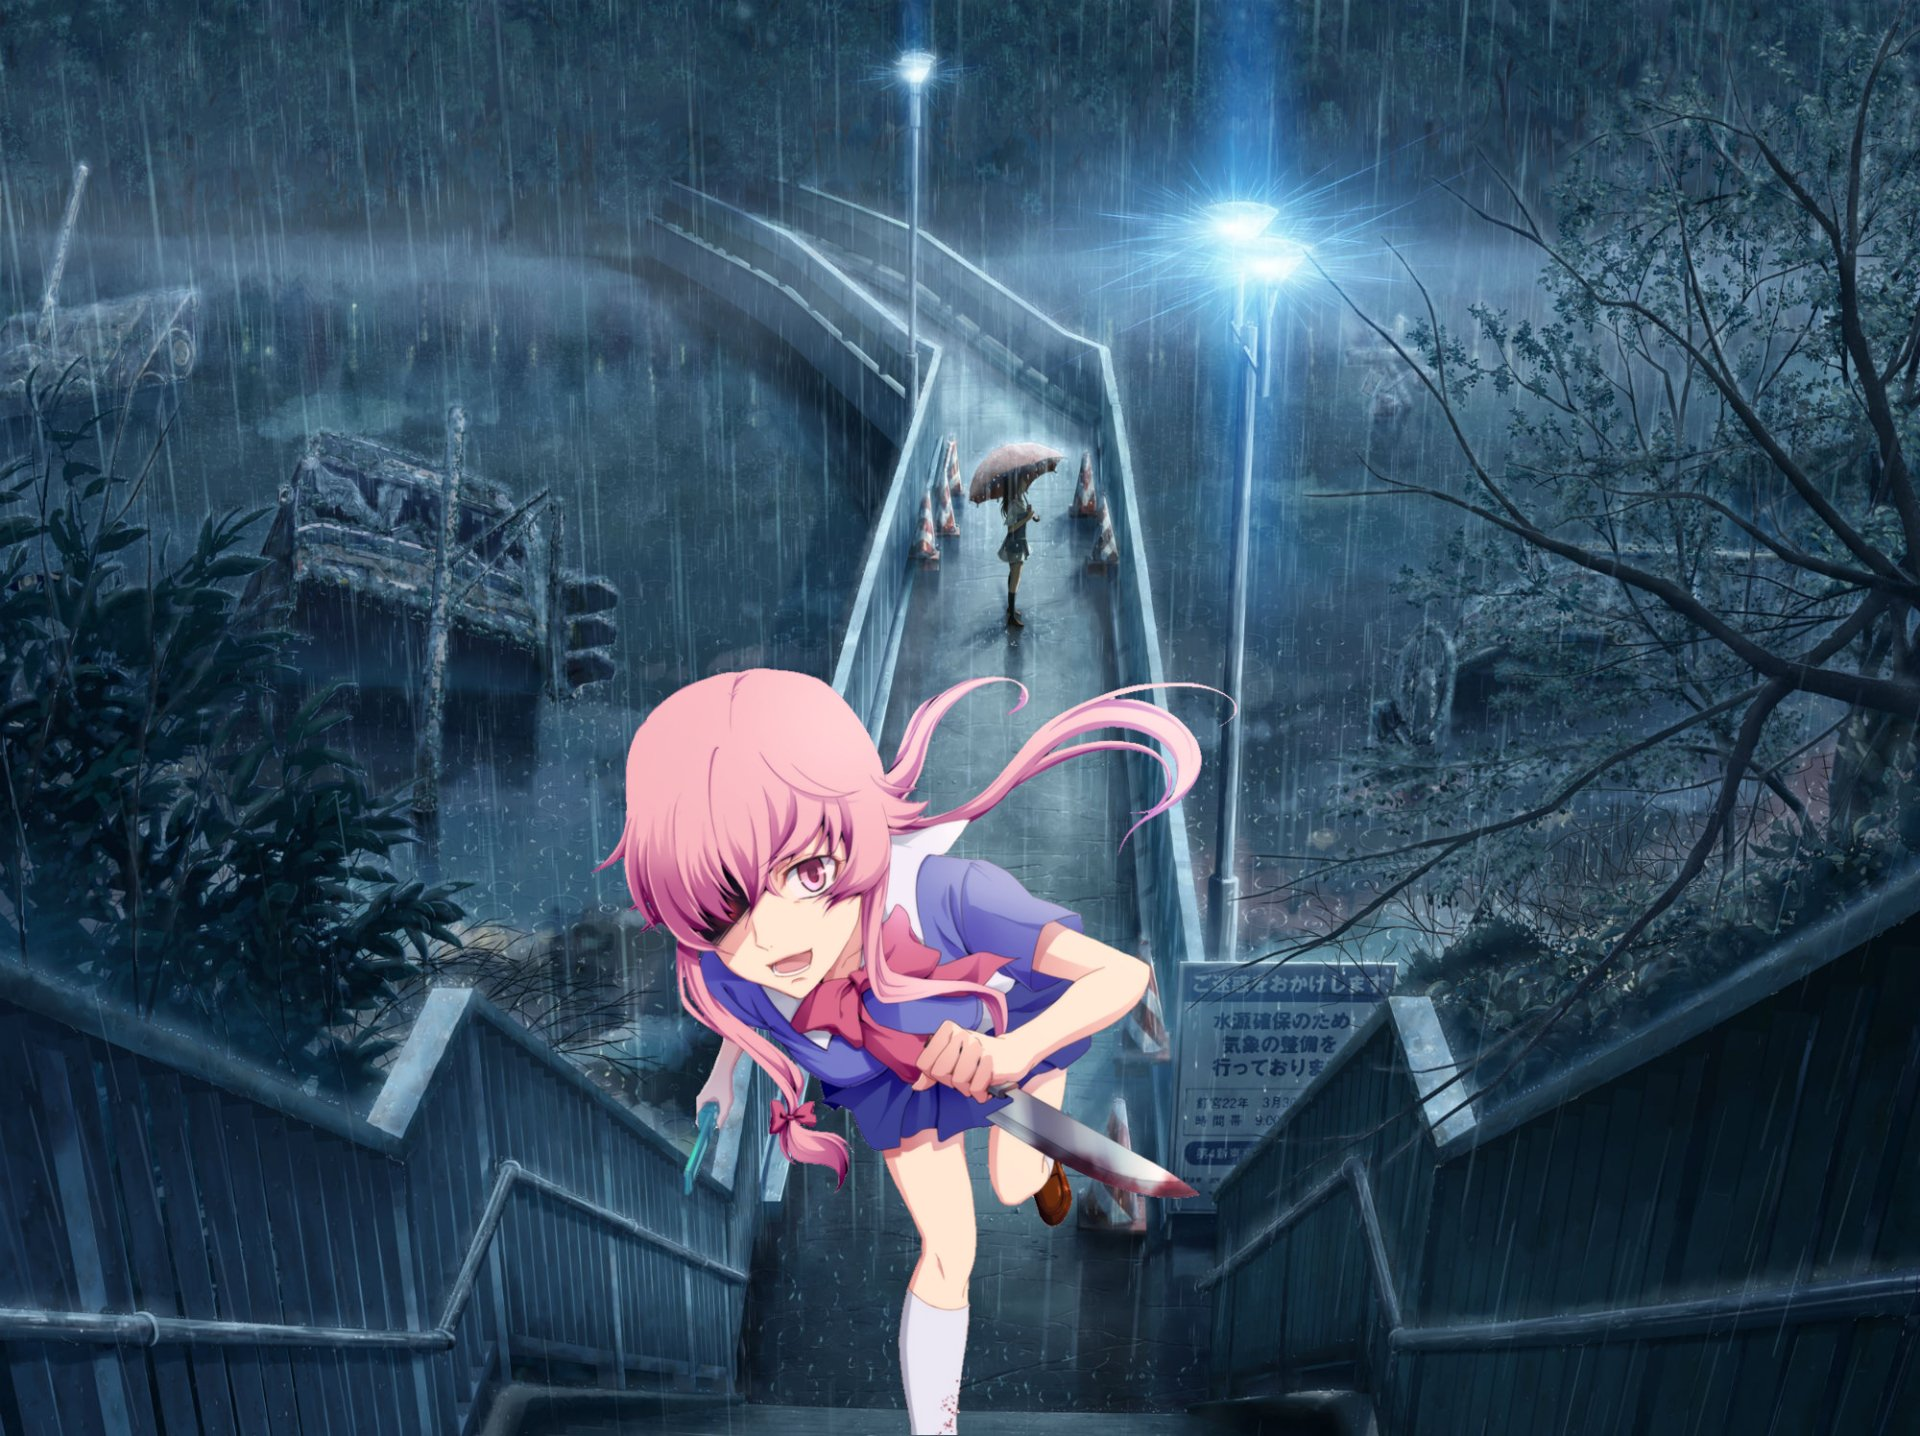 Gasai Yuno Wallpaper: Yuno - Mirai Nikki HD Wallpaper